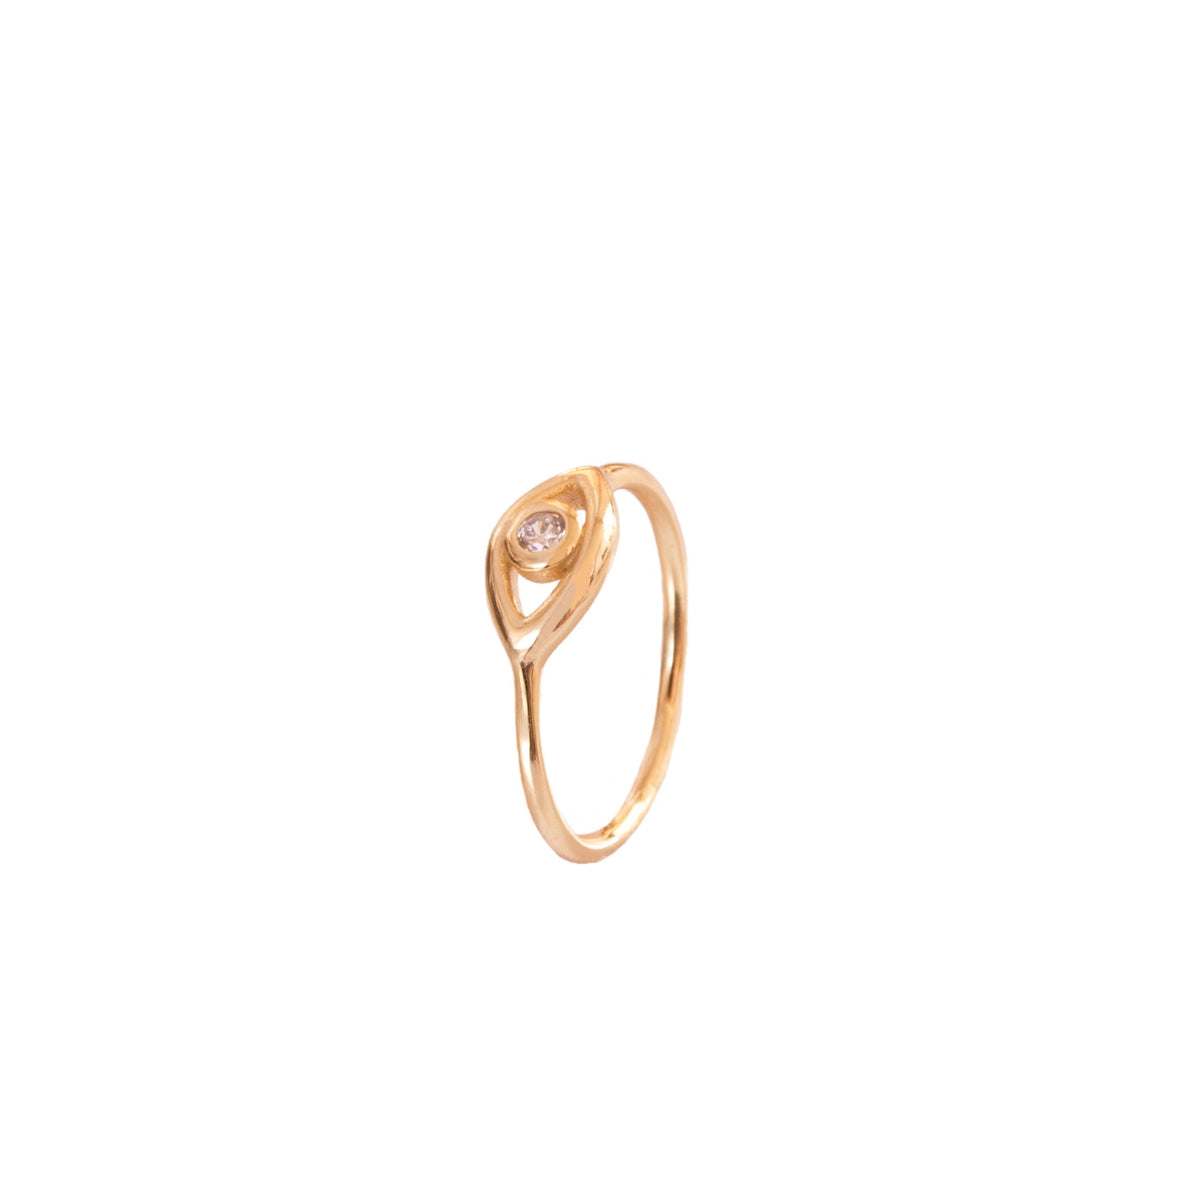 Zirconia eye gold